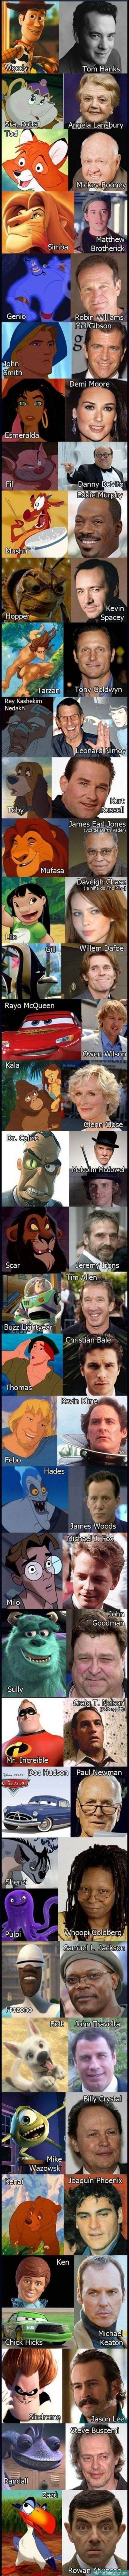 40 Iconic Characters And Their Voice Actors